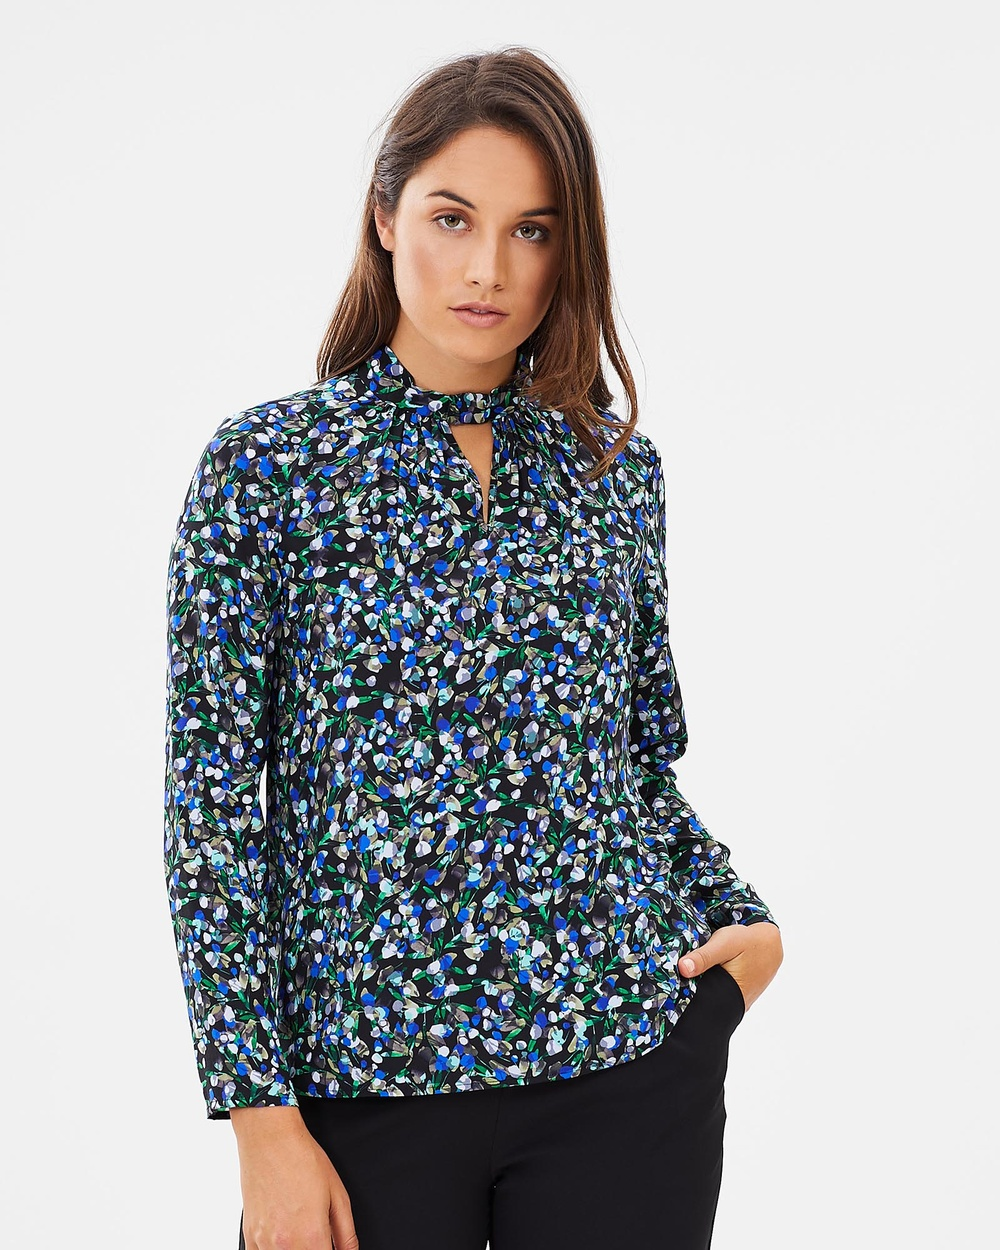 David Lawrence Long Sleeve Silk Valencia Printed Top Tops Blue Multi Long Sleeve Silk Valencia Printed Top